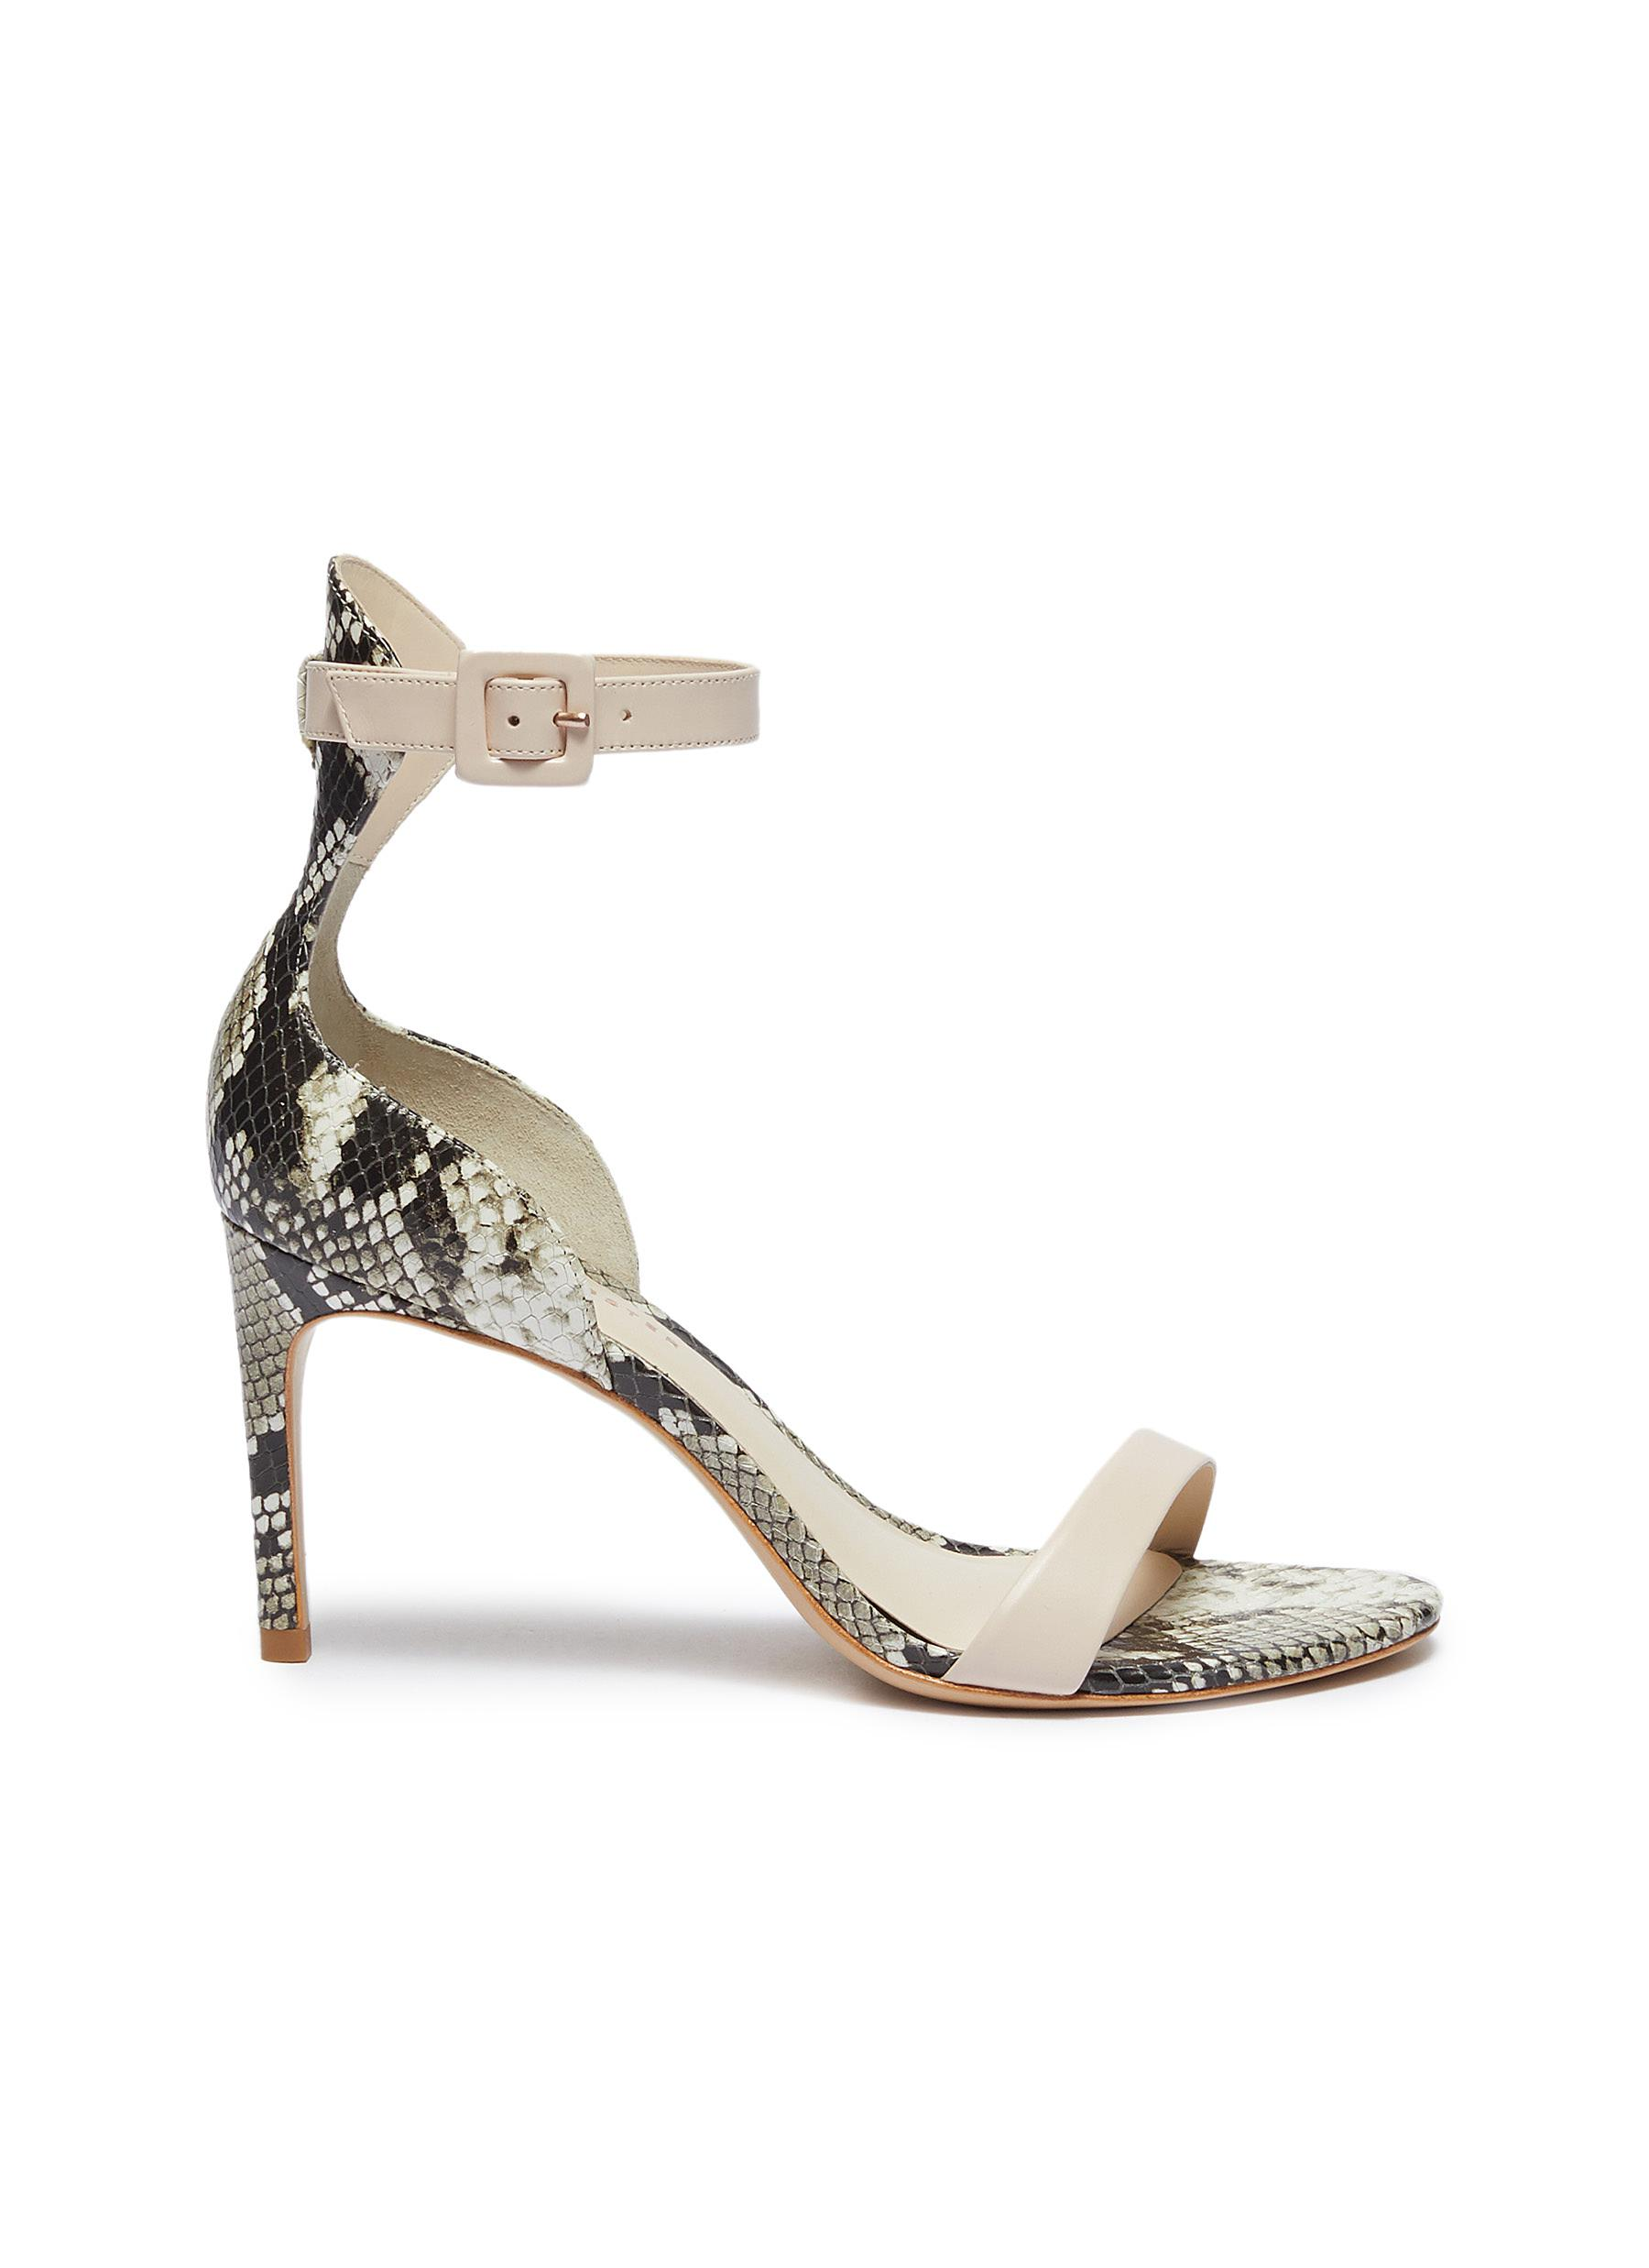 Nicole ankle strap snake embossed leather sandals by Sophia Webster